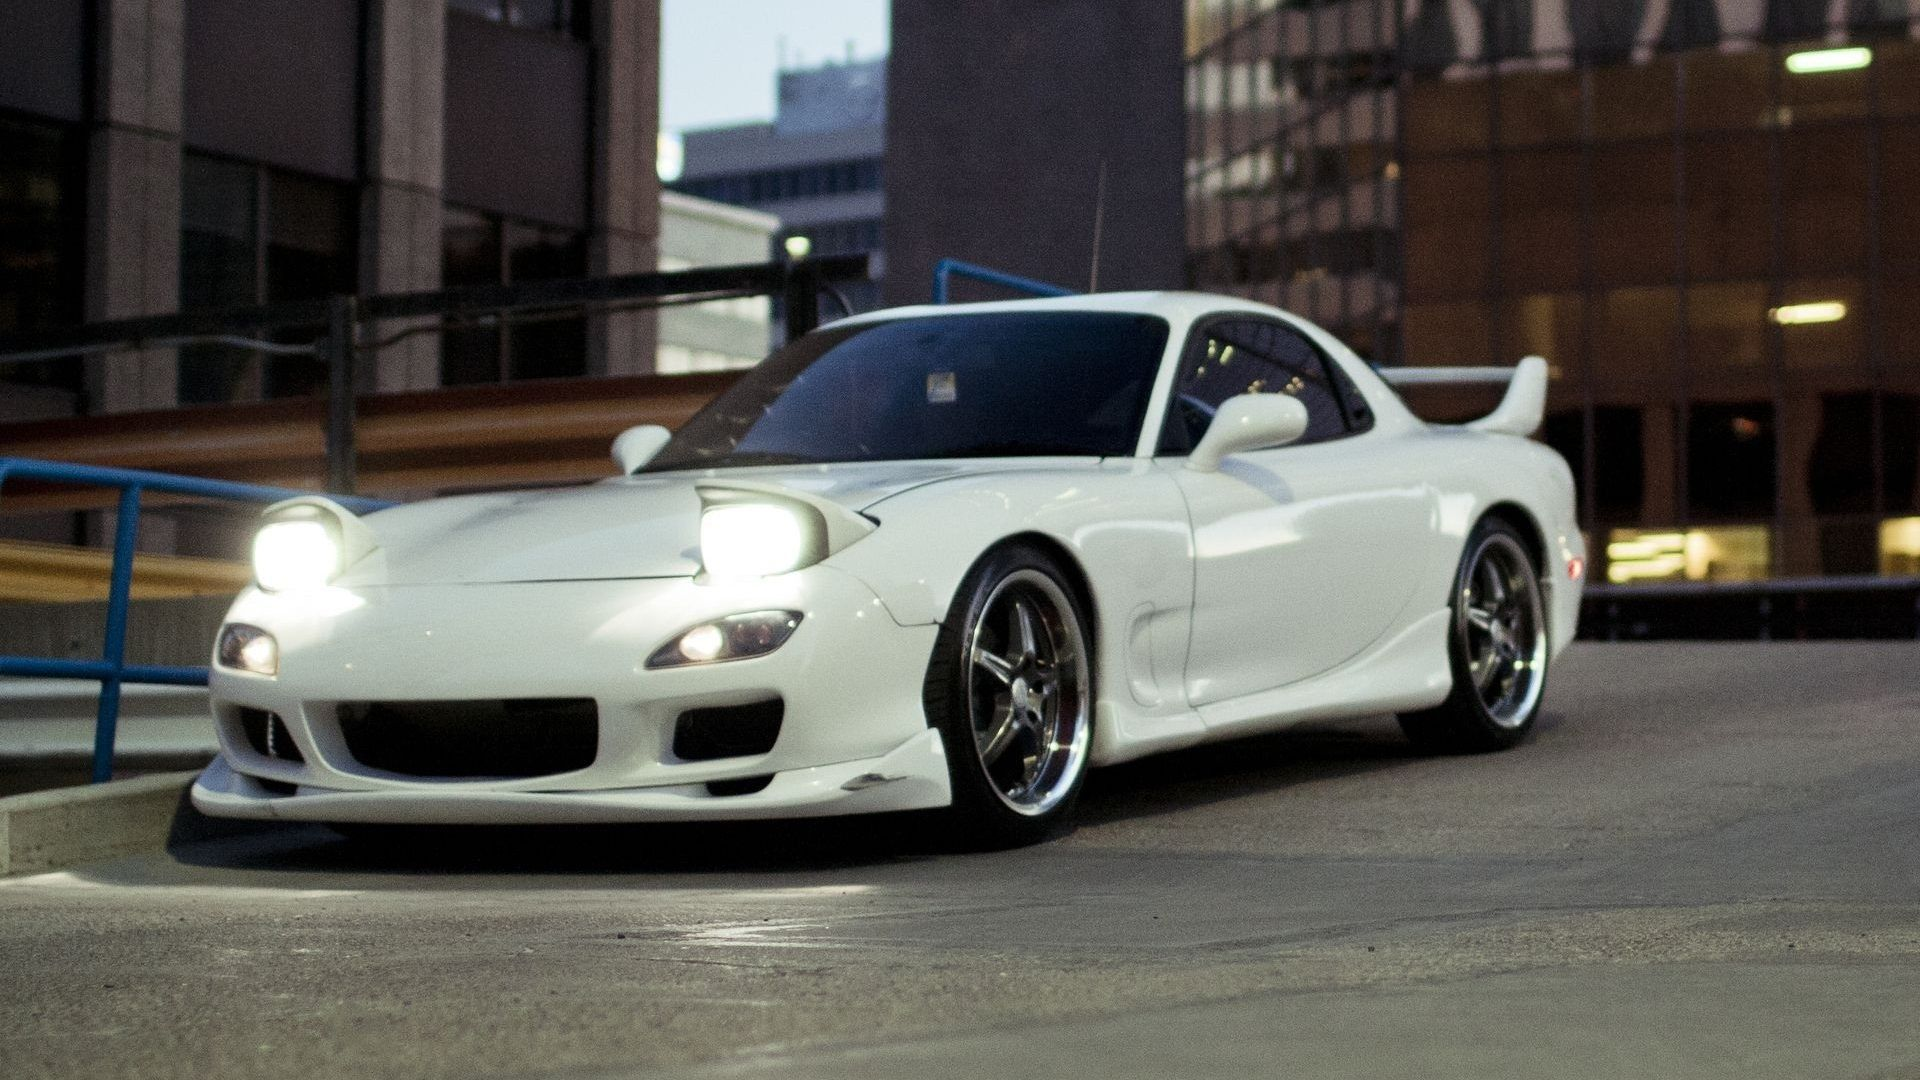 The Mazda RX-7 is a sports car produced by the Japanese automaker Mazda from 1978 to 2002. Description from sport.pgzmedia.com. I searched for this on bing.com/images